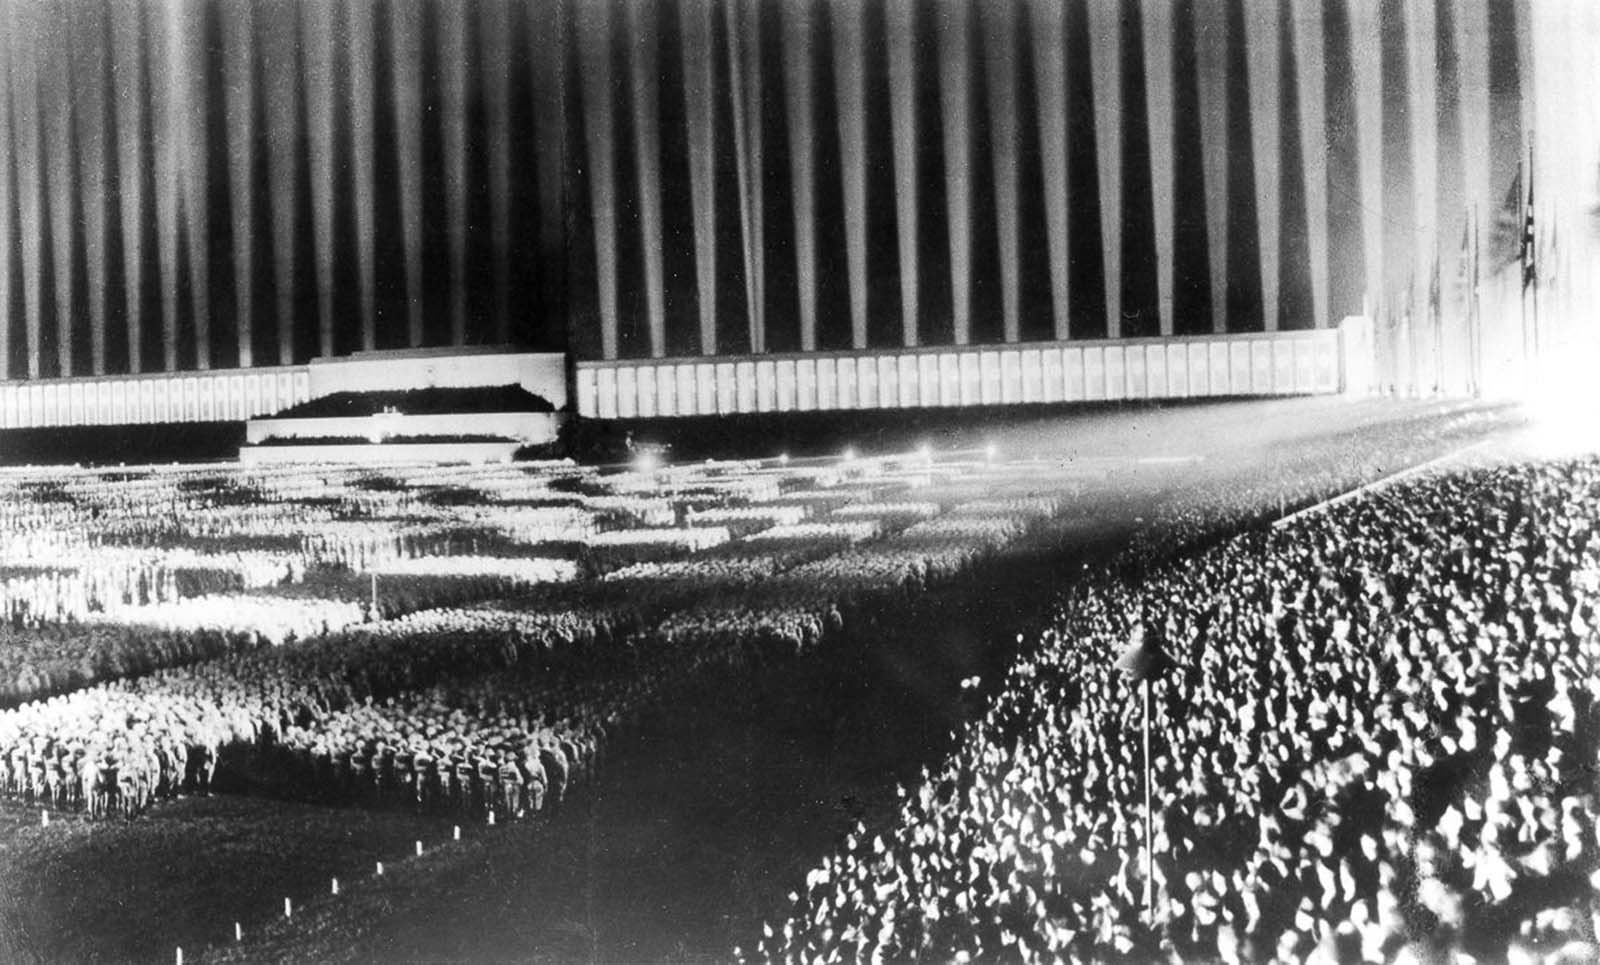 """...the single most dramatic moment of the Nazi Party rallies... was not a military parade or a political speech but the Lichtdom, or Cathedral of Light..."" — Kathleen James-Chakraborty. 1936."